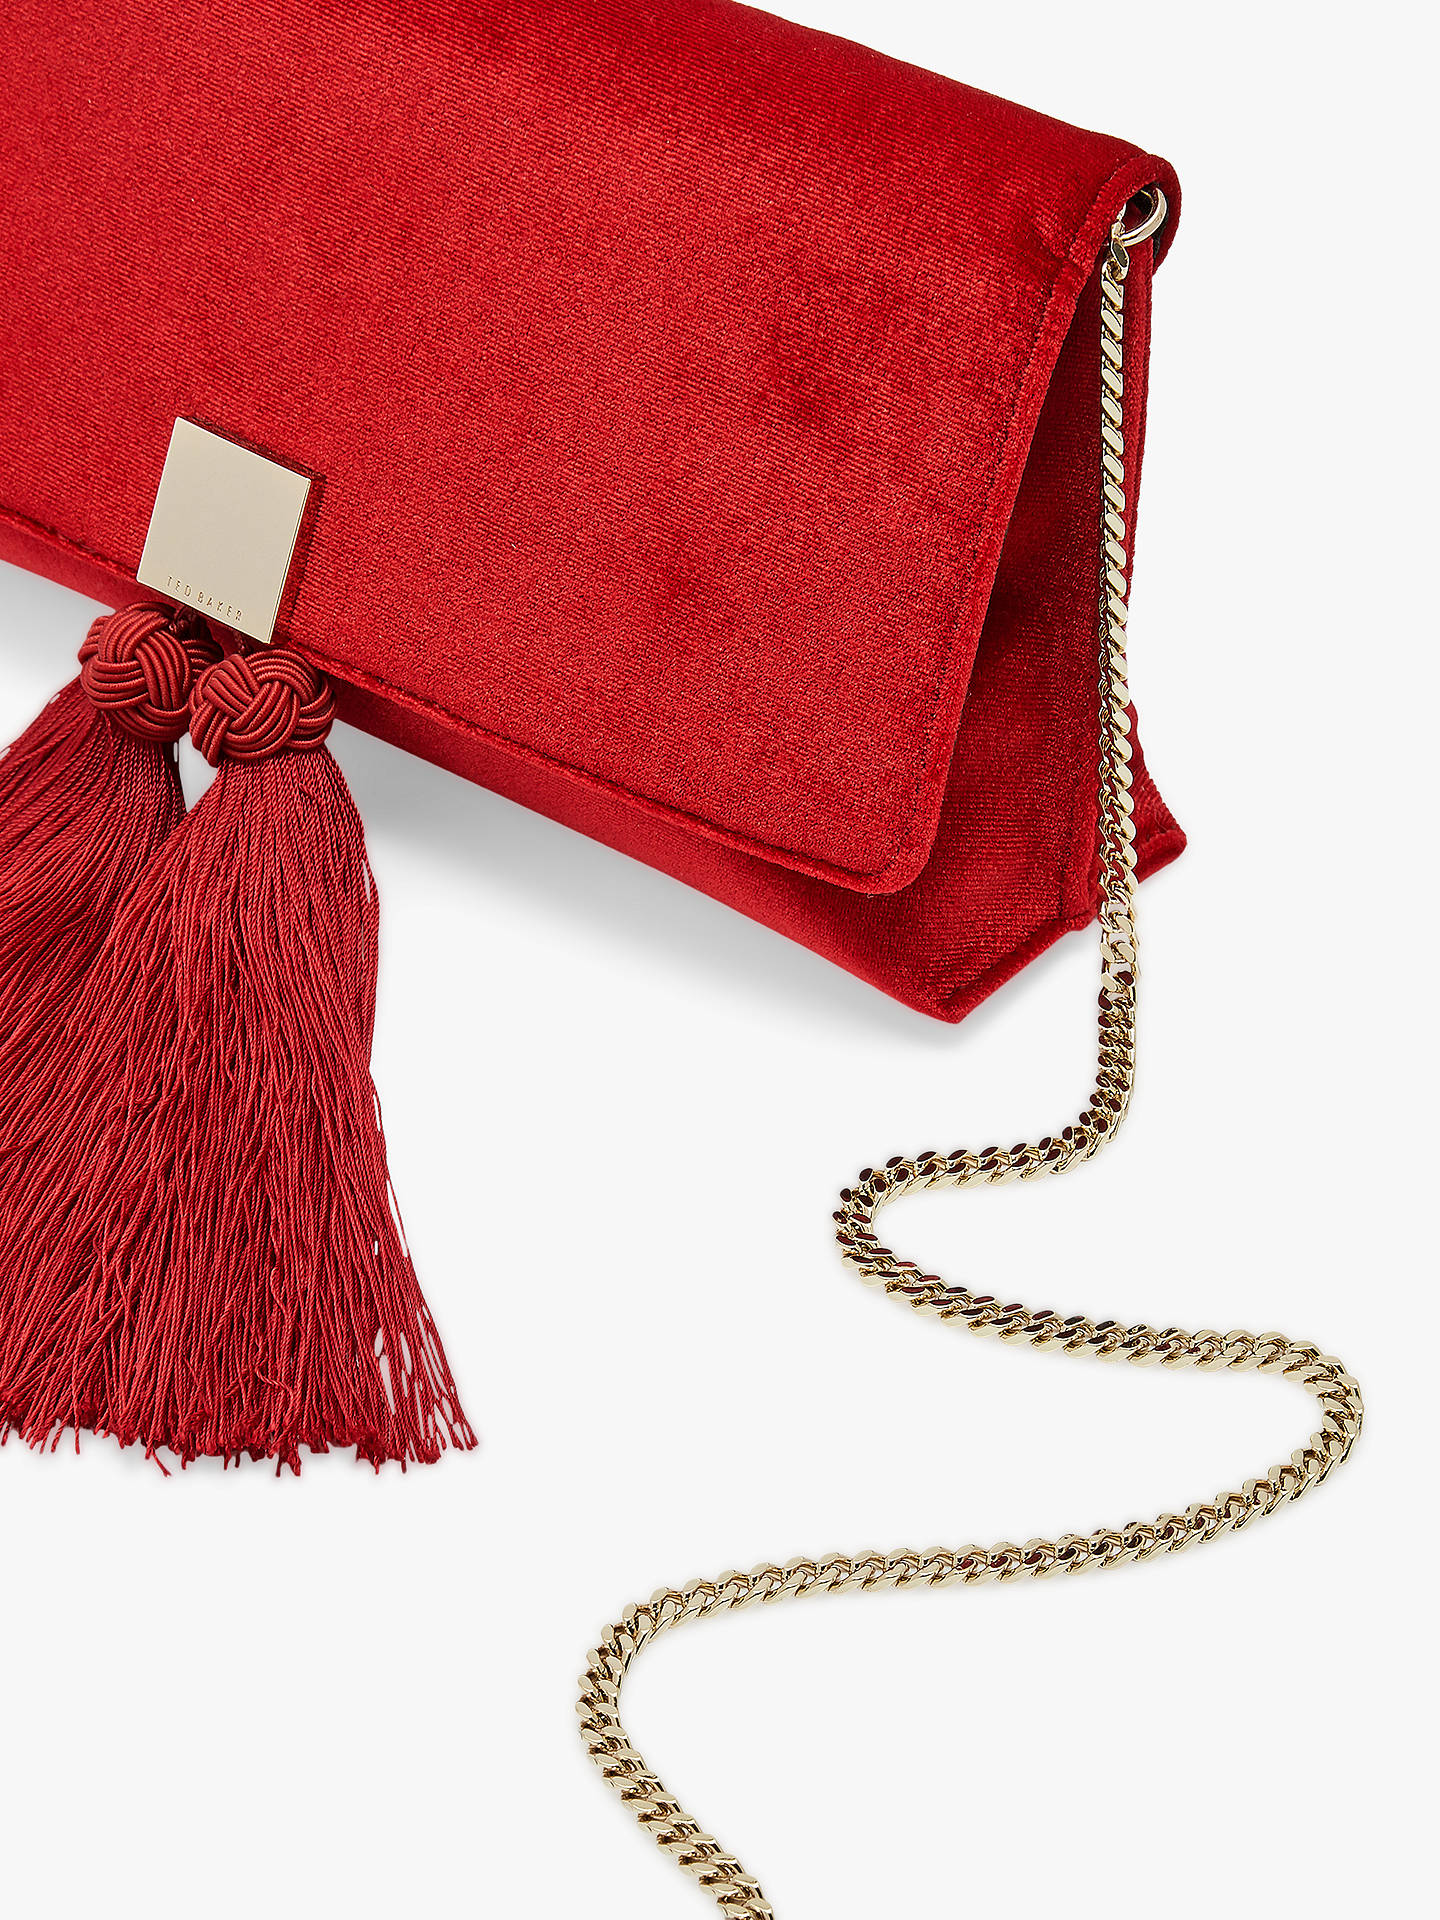 BuyTed Baker Karly Tassel Evening Clutch Bag, Mid Red Online at johnlewis.com